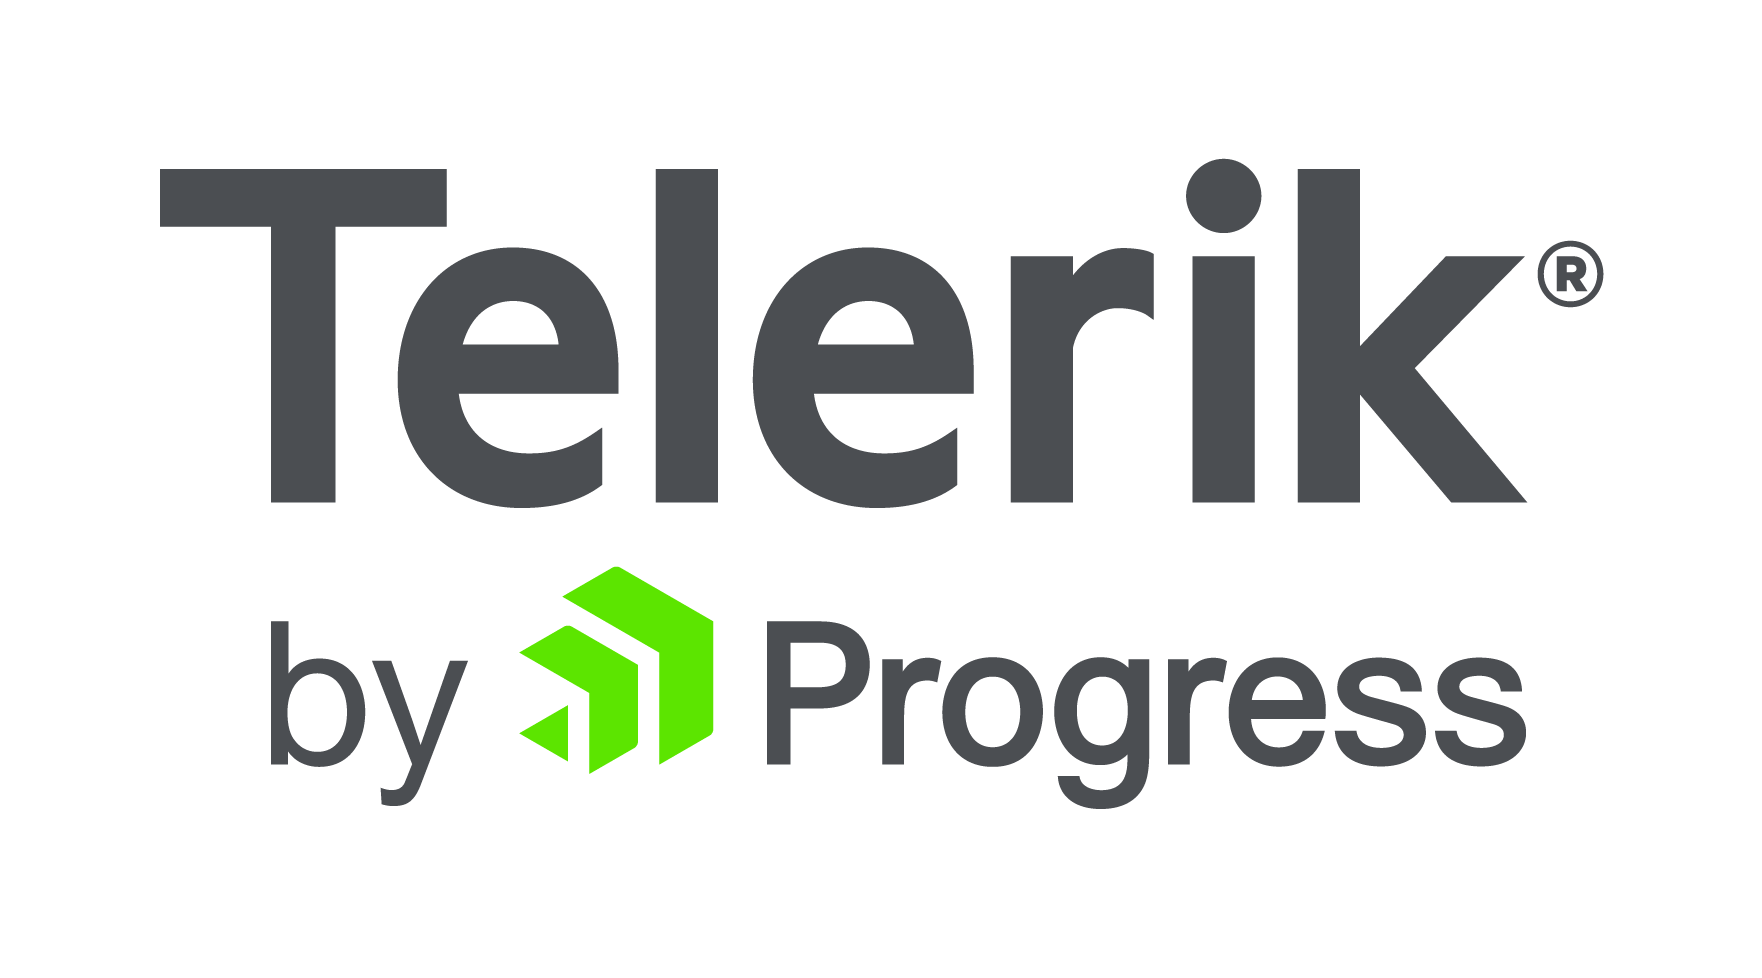 Telerik Progress Logo